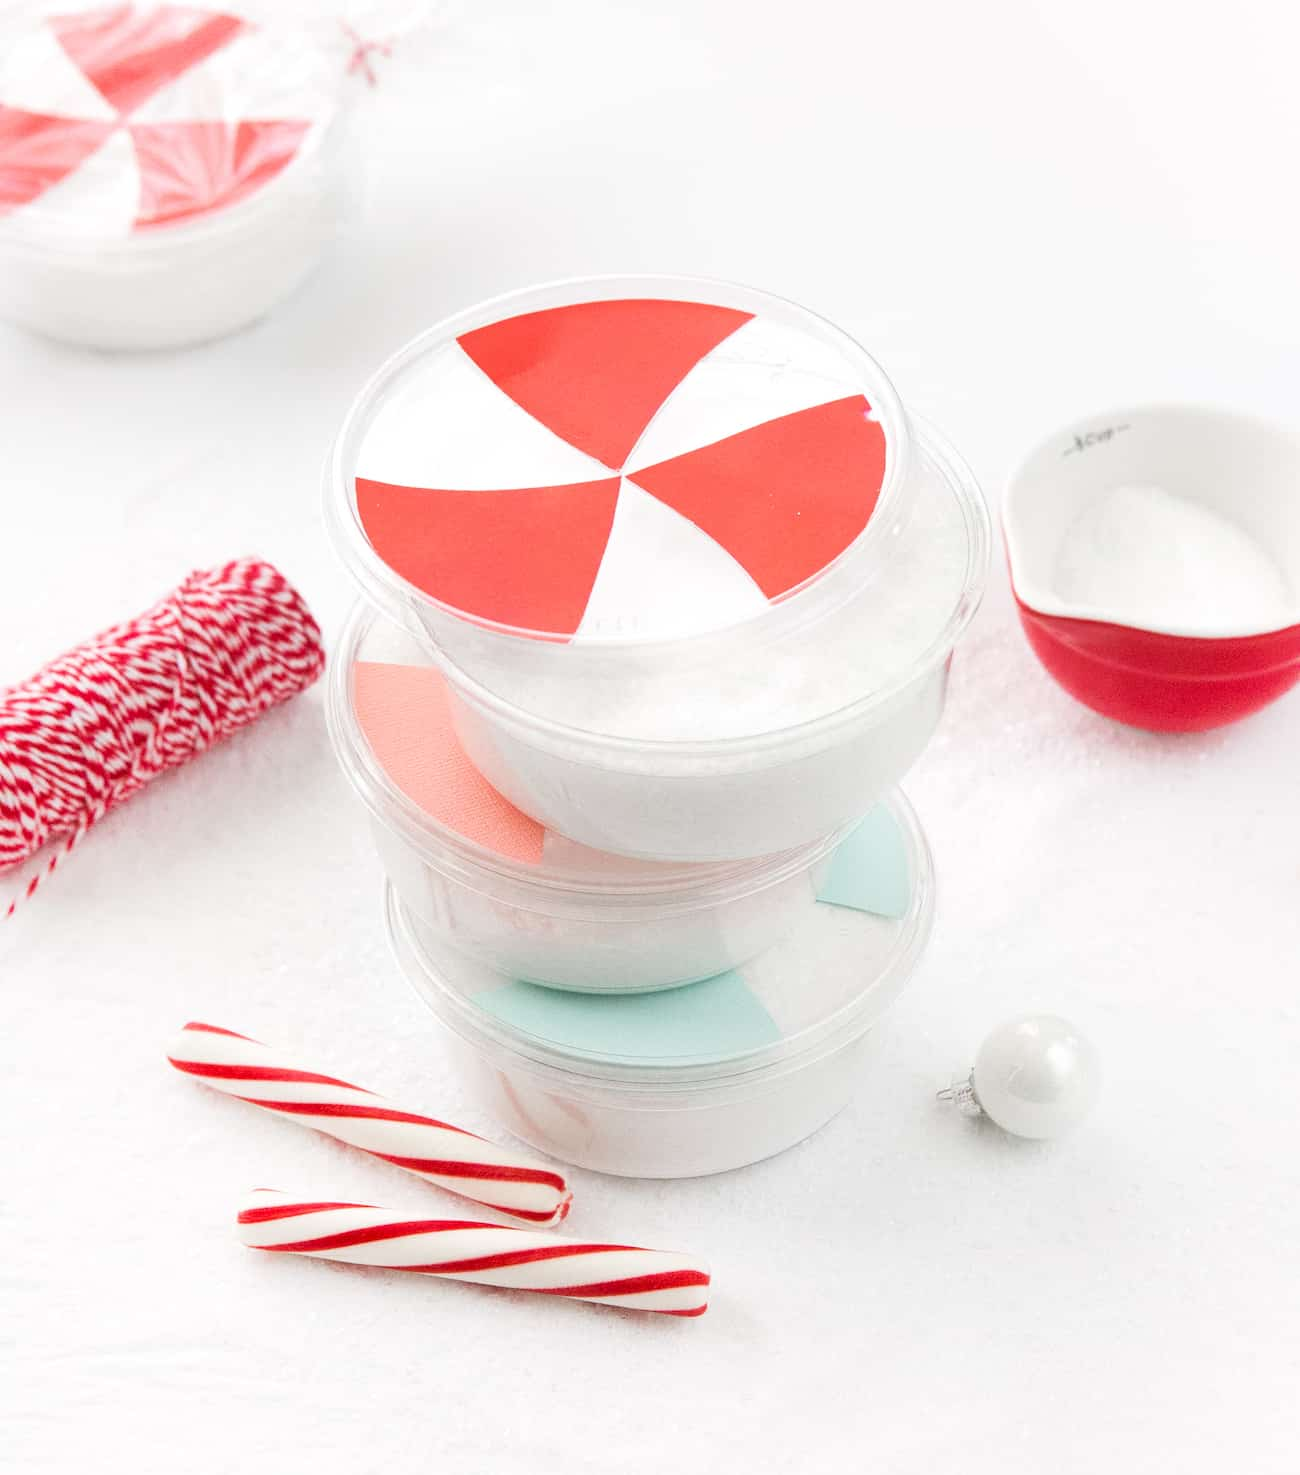 Containers of peppermint DIY bath salt decorated as peppermint candy.